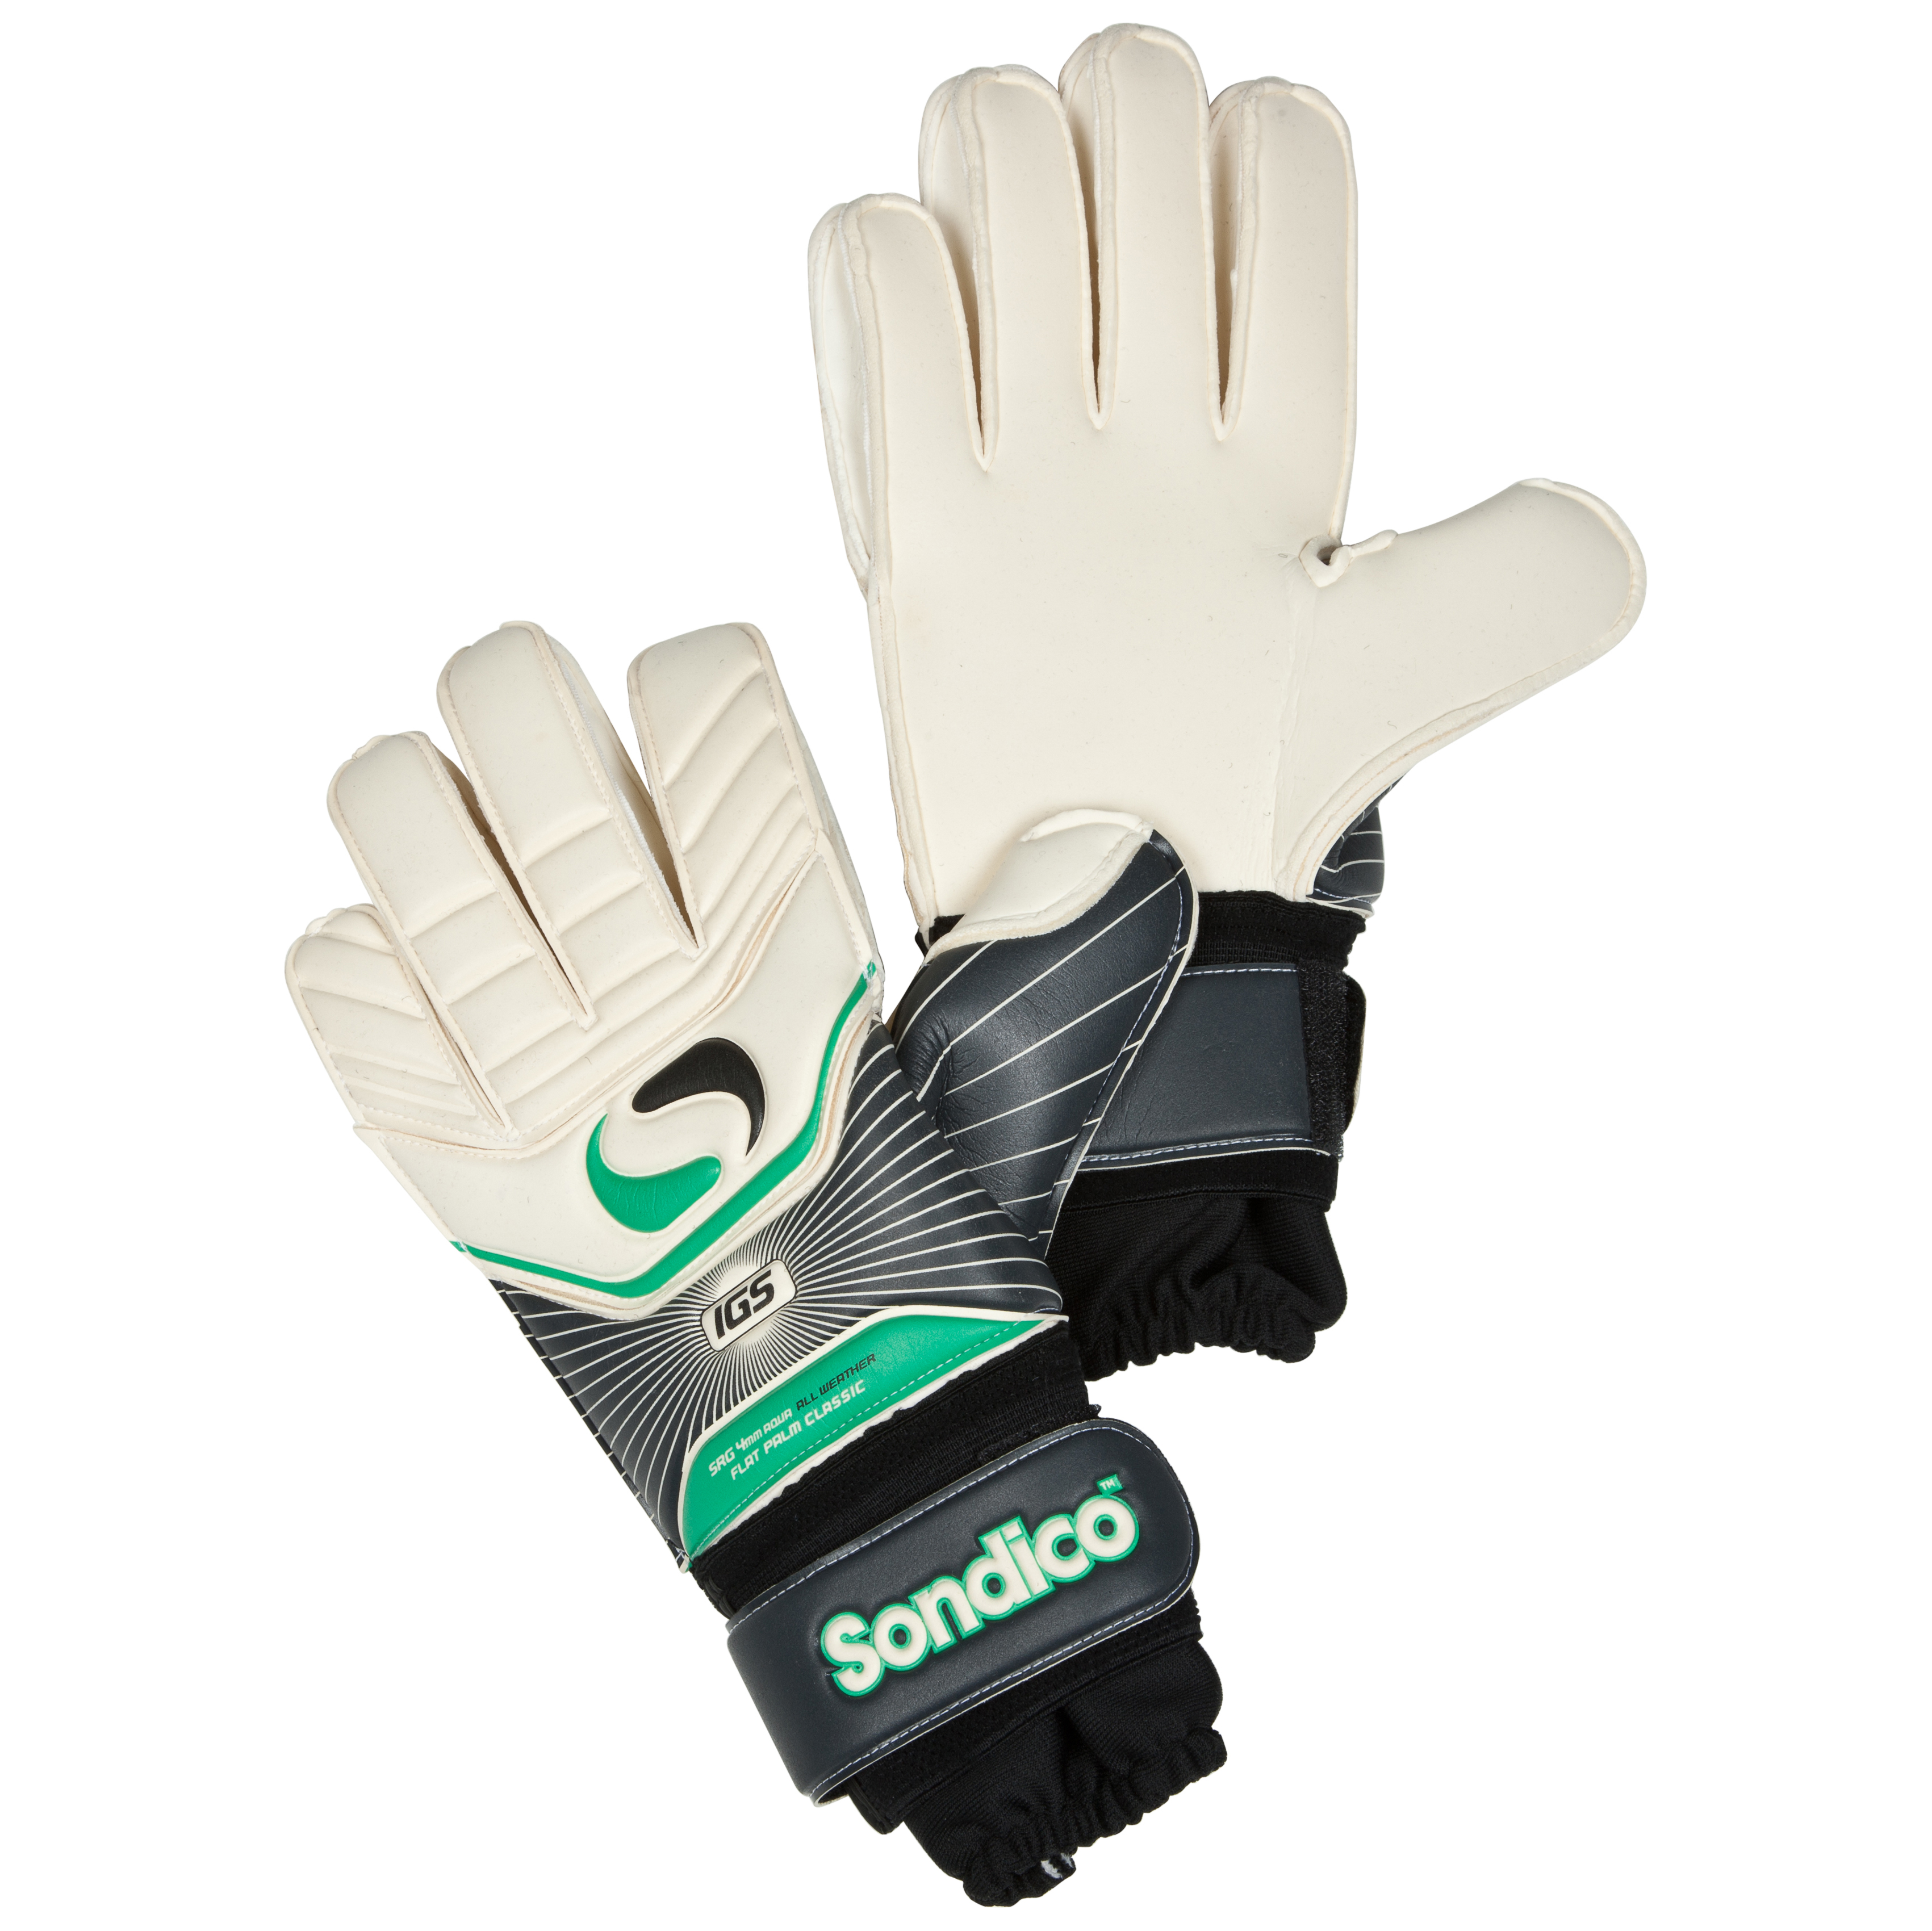 Sondico Icon Pro Classic Flat Palm Goalkeeper Gloves - Black/White/Gun Metal/Green